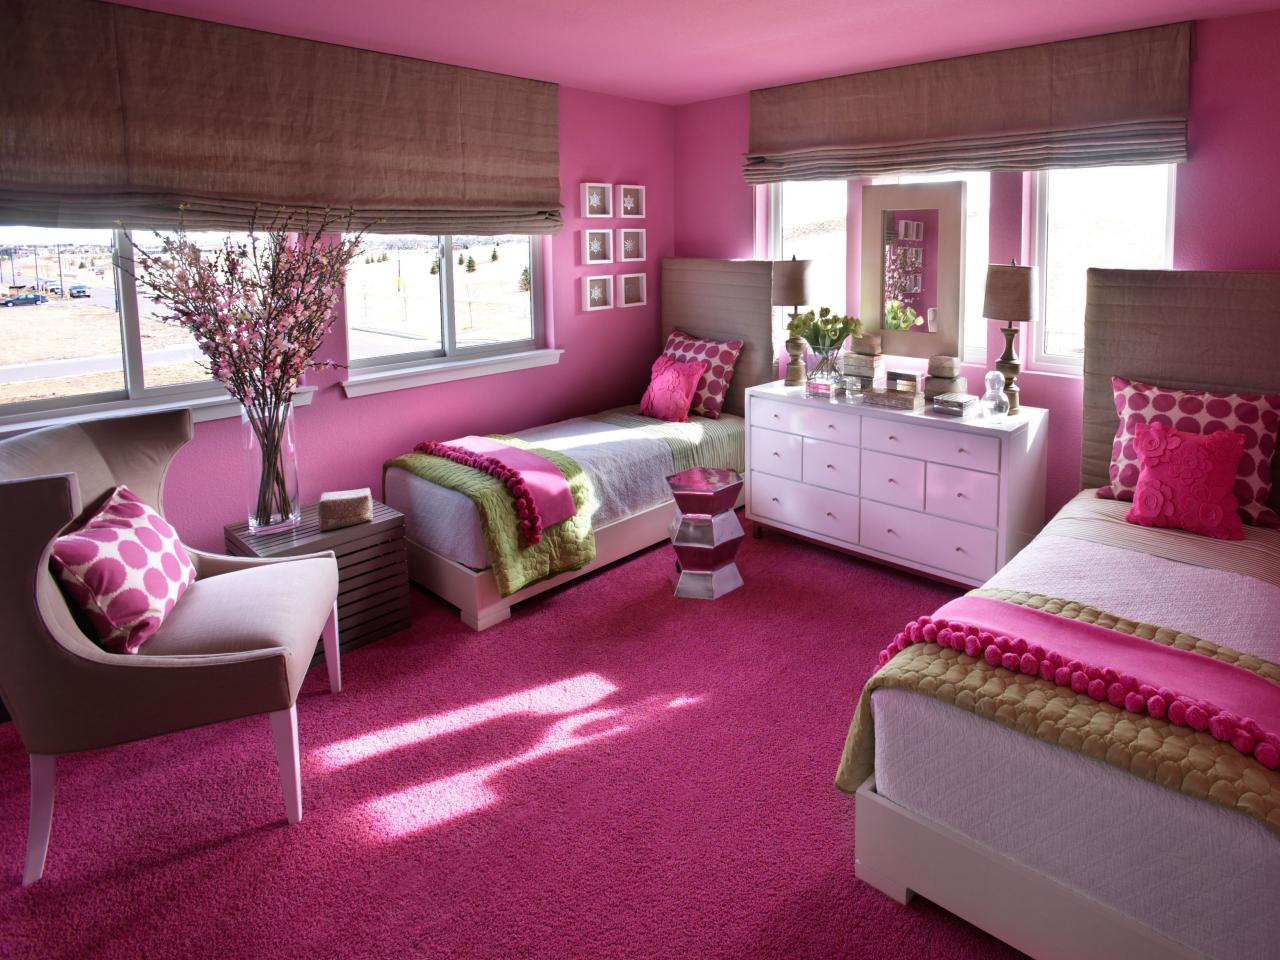 Bedroom ideas for teenage girls purple and pink - Tags